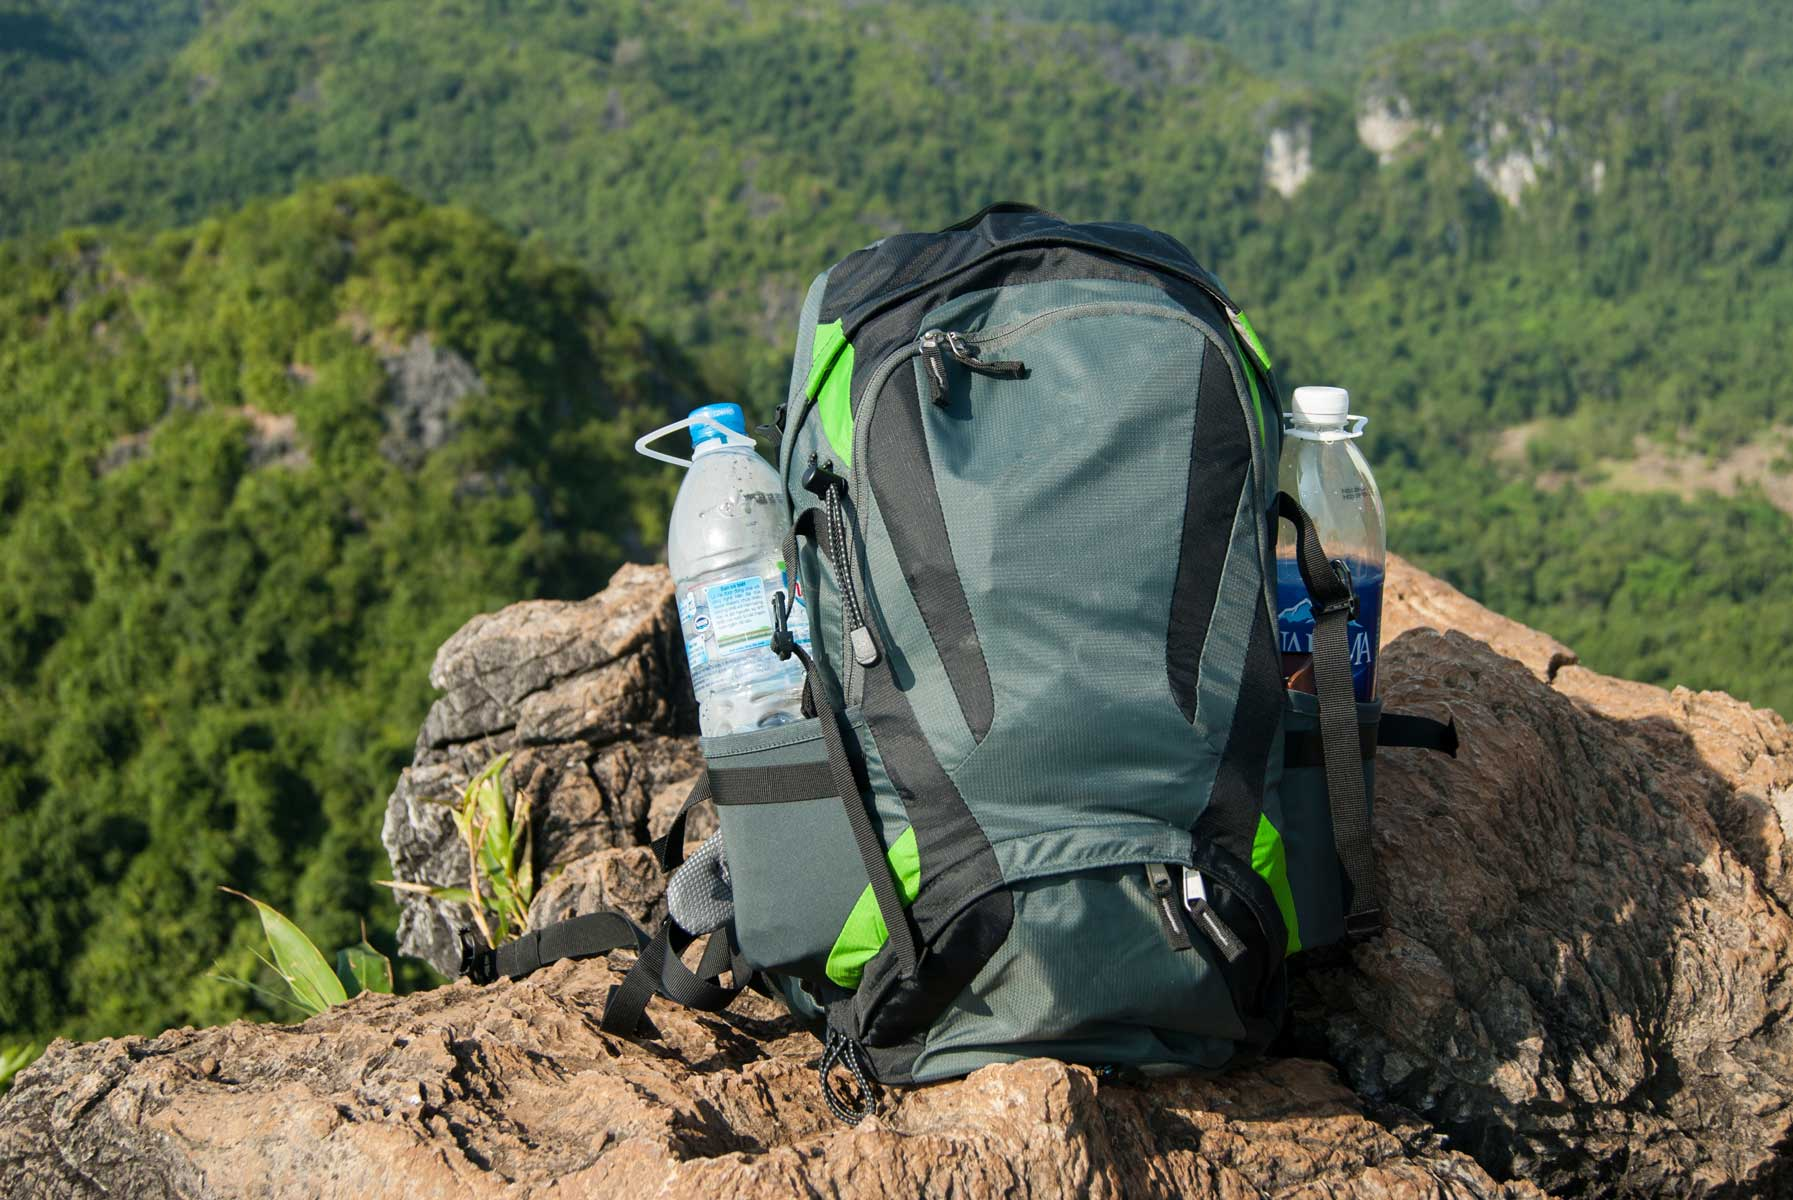 Hiking pack with two water bottles inside